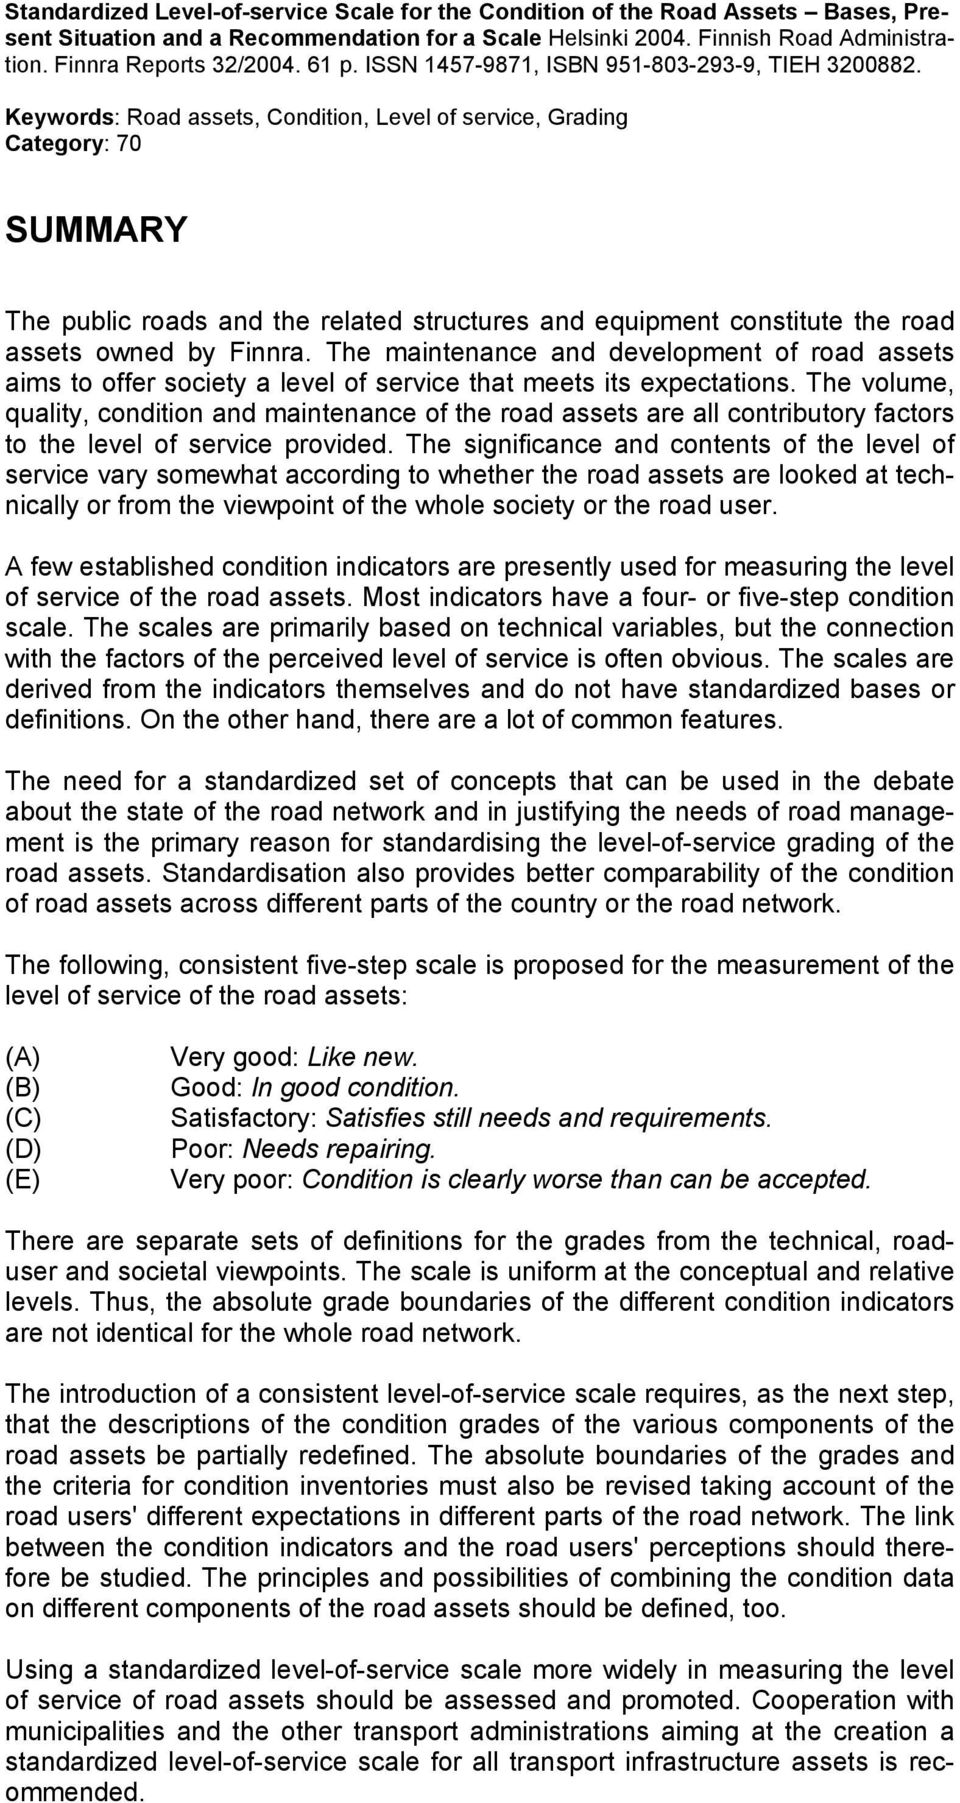 Keywords: Road assets, Condition, Level of service, Grading Category: 70 SUMMARY The public roads and the related structures and equipment constitute the road assets owned by Finnra.